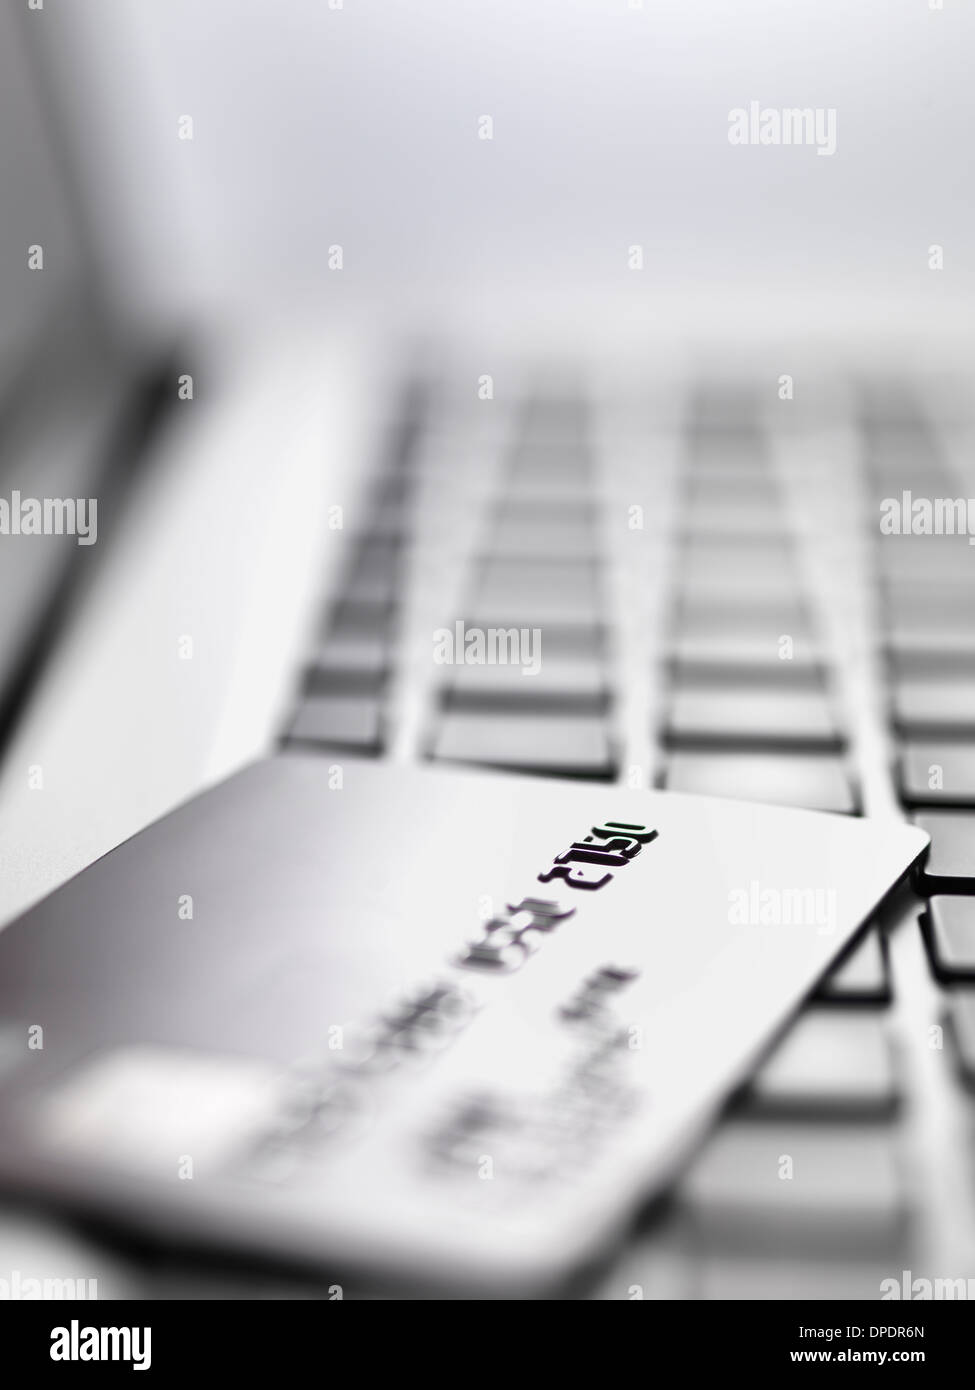 Credit card on laptop to illustrate internet shopping and internet fraud Stock Photo